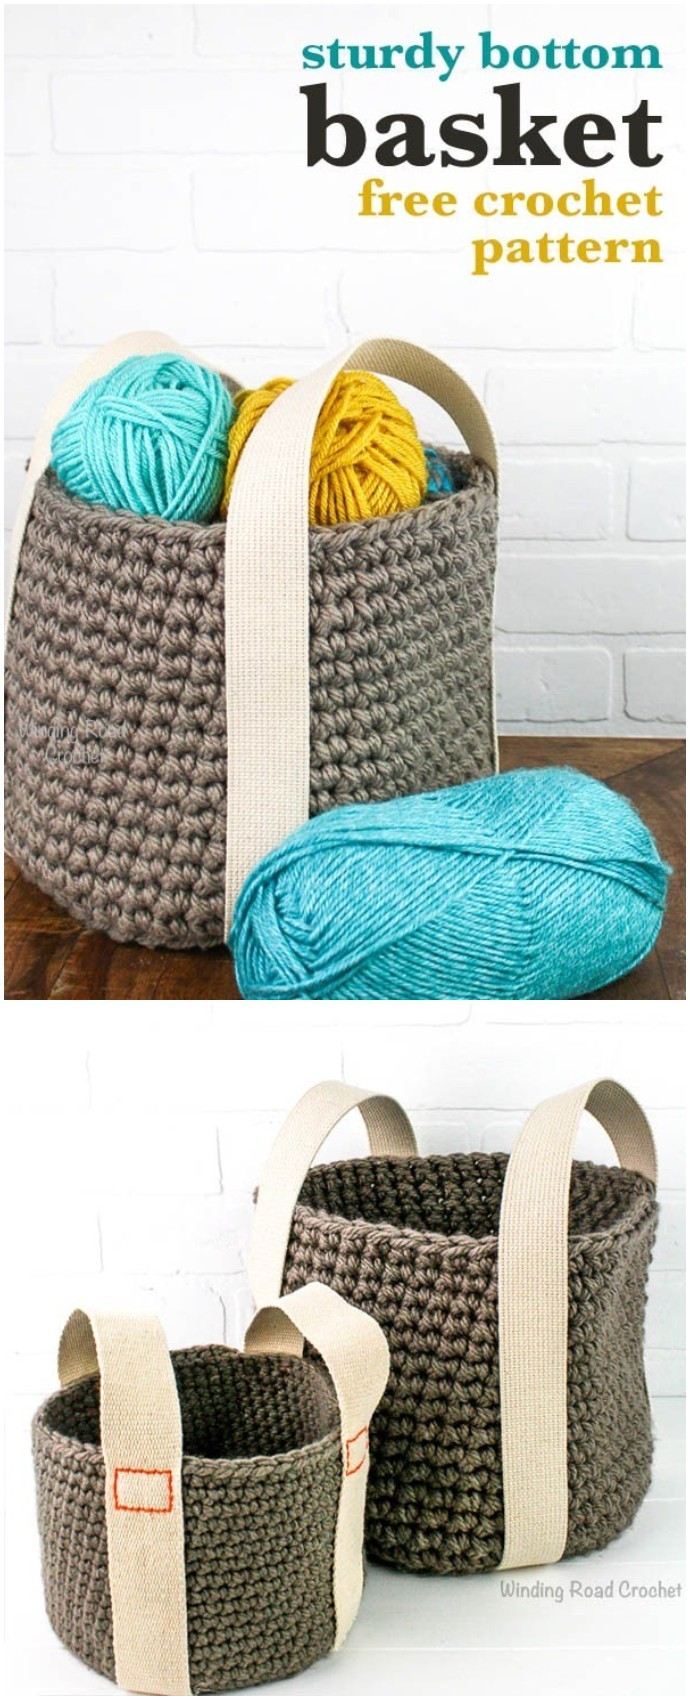 Sturdy Bottom Basket Free Crochet